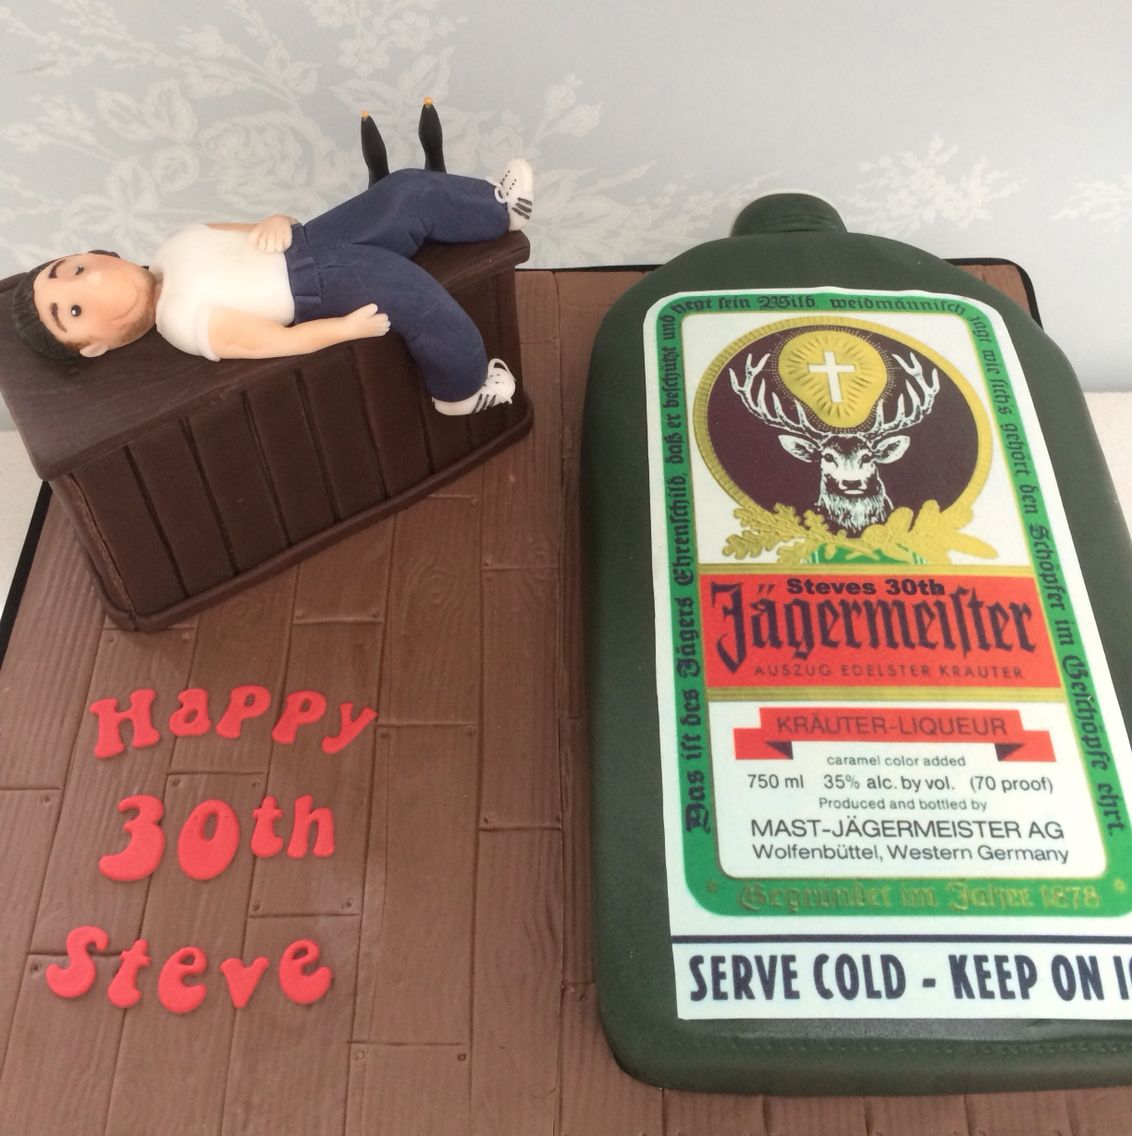 50th Birthday Liquor: Jagermeister Cake Complete With Drunk Birthday Boy!